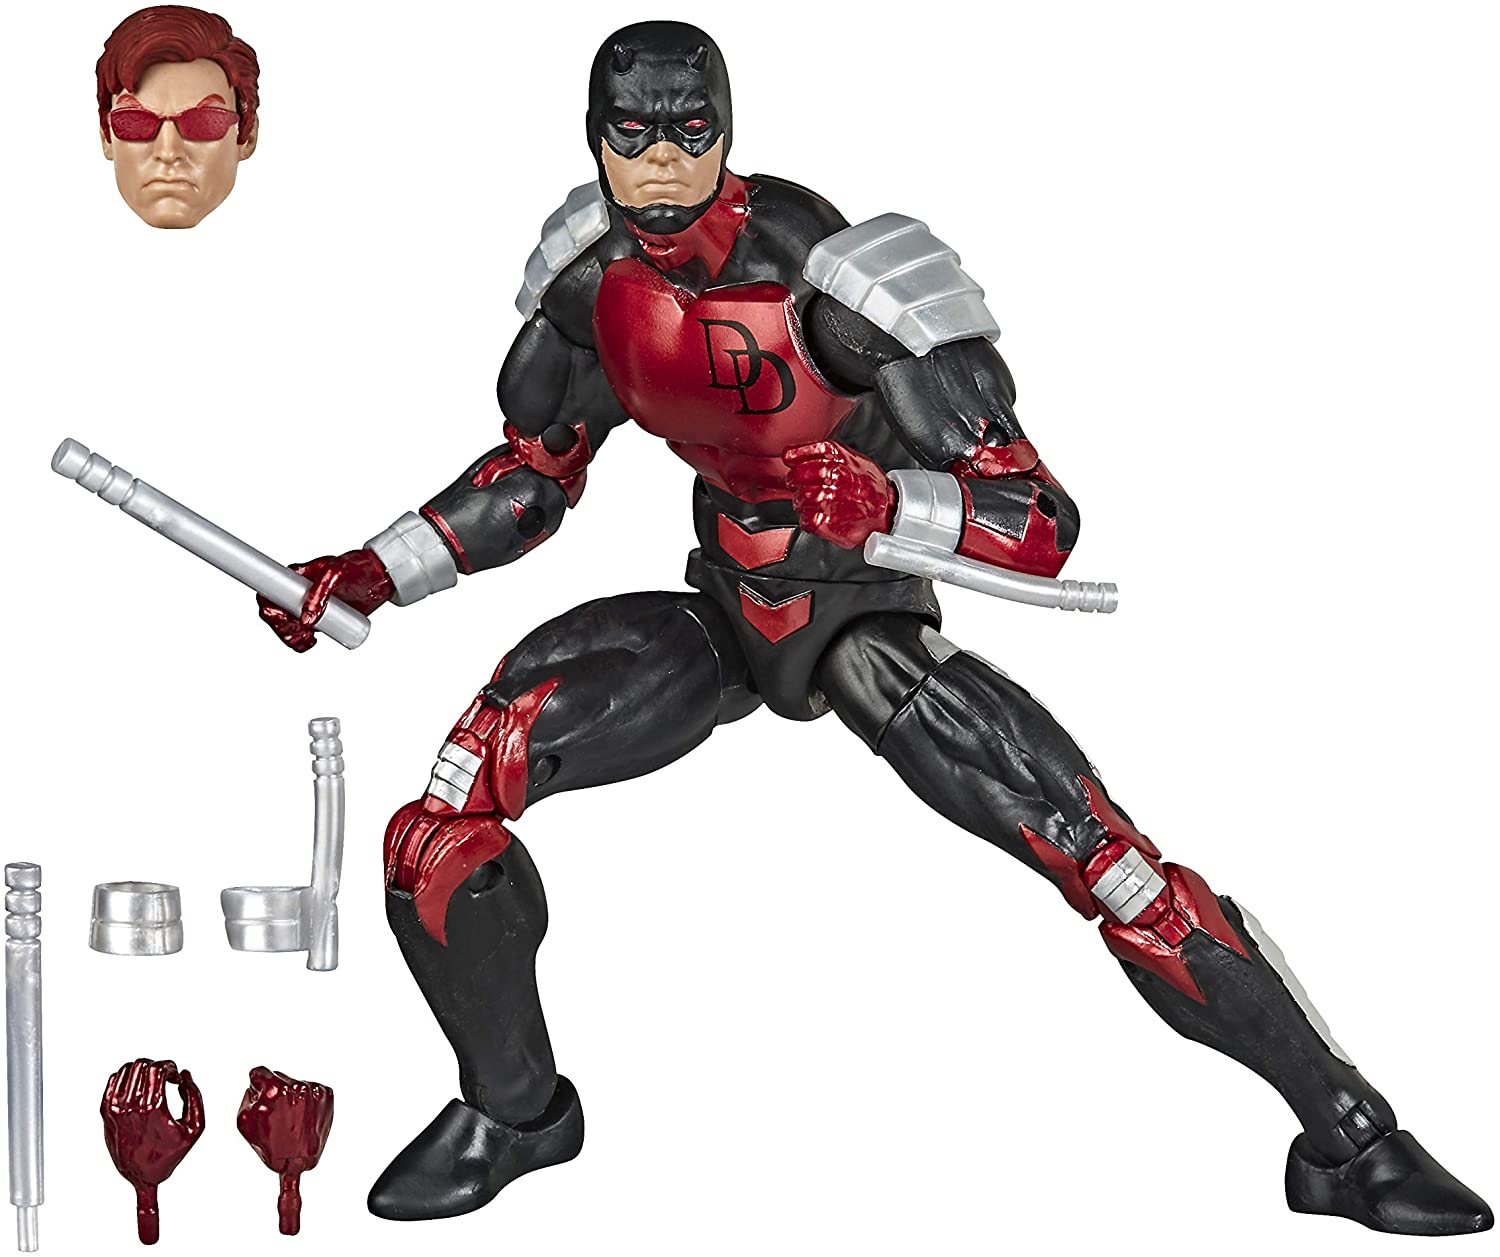 Action Figure Demolidor (Daredevil): Homem Aranha (Spider-Man) (Legends Vintage) - Hasbro